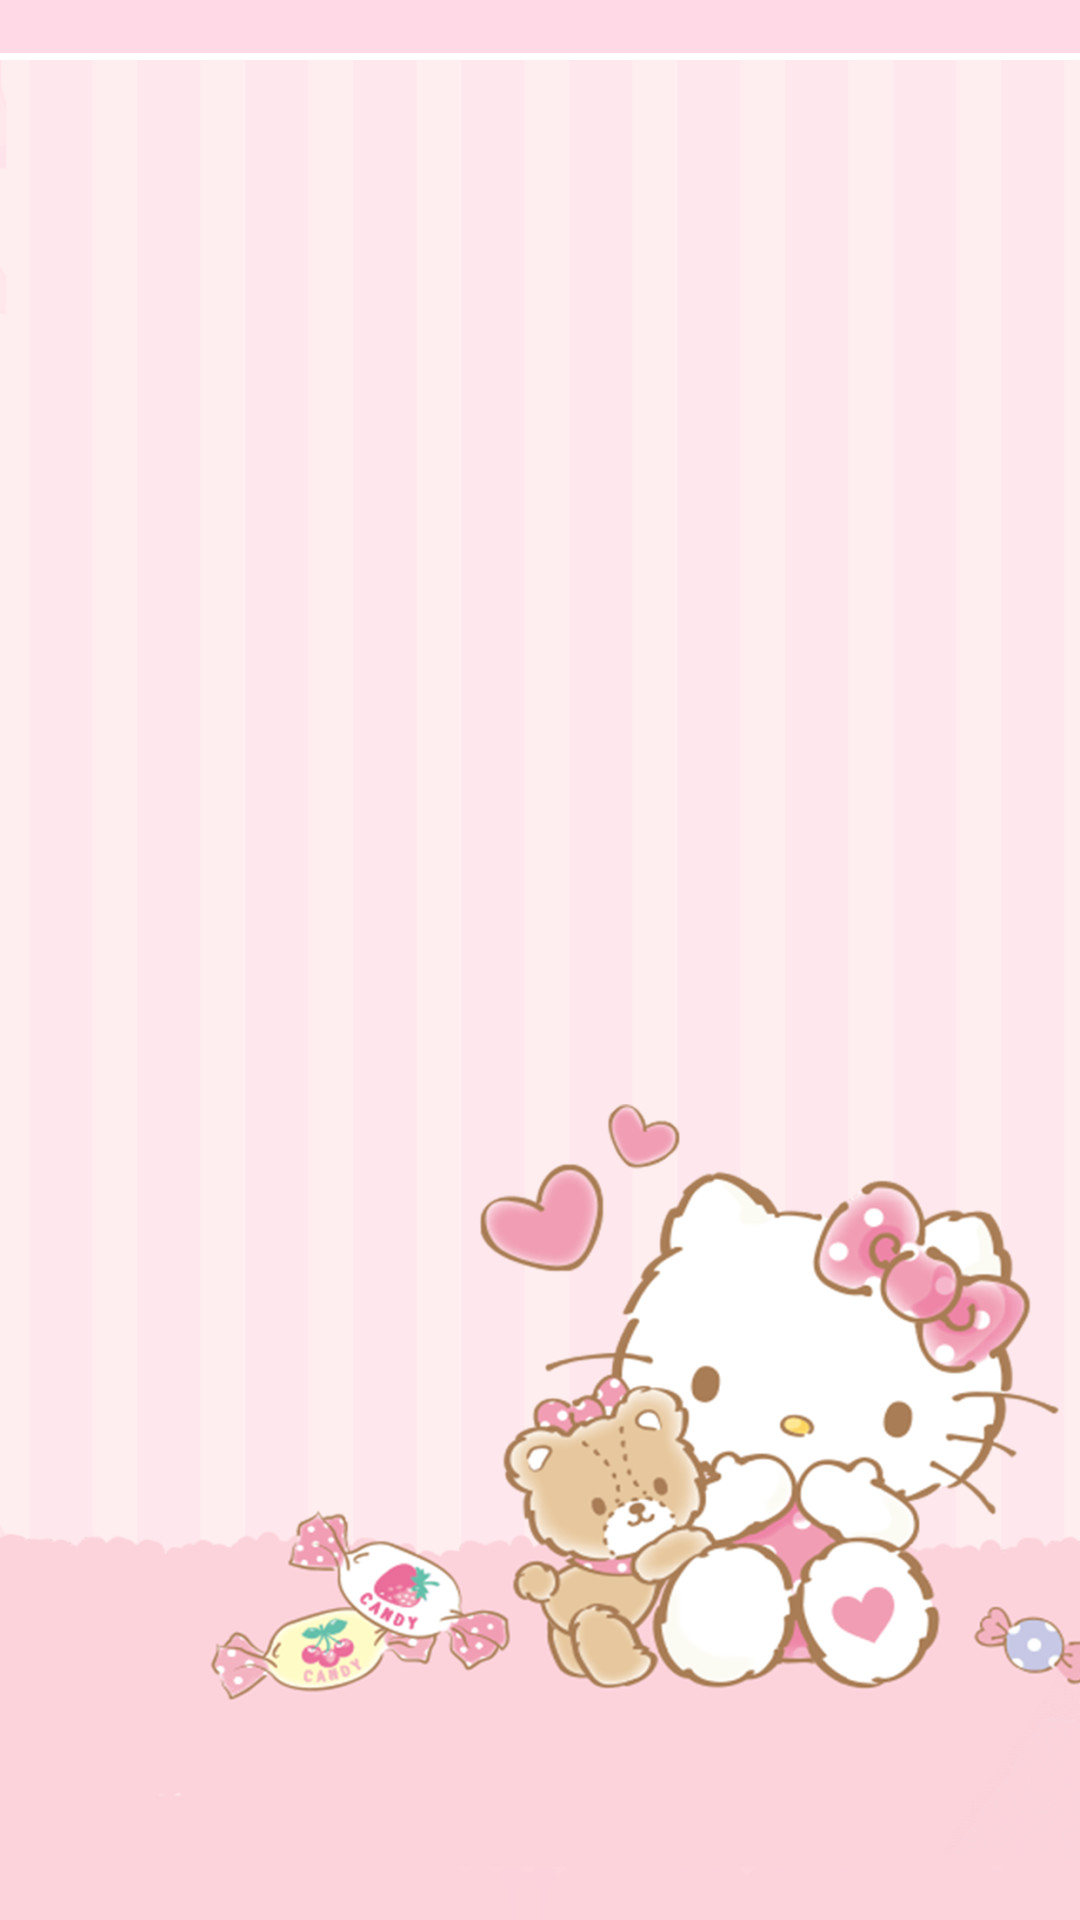 Beautiful Wallpaper Hello Kitty Light Pink - 738540-widescreen-baby-hello-kitty-wallpaper-1080x1920  Pic_346528.jpg